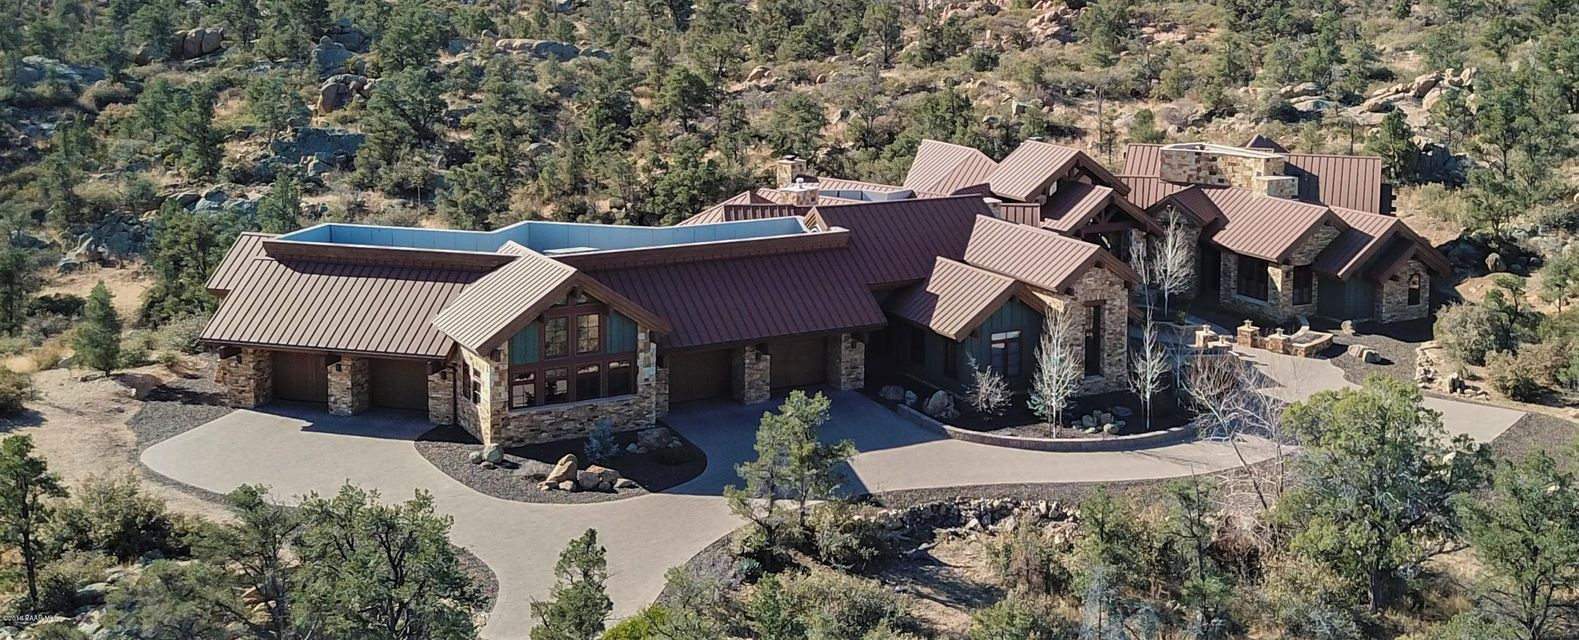 4665 W Phantom Hill Road, Prescott, Arizona